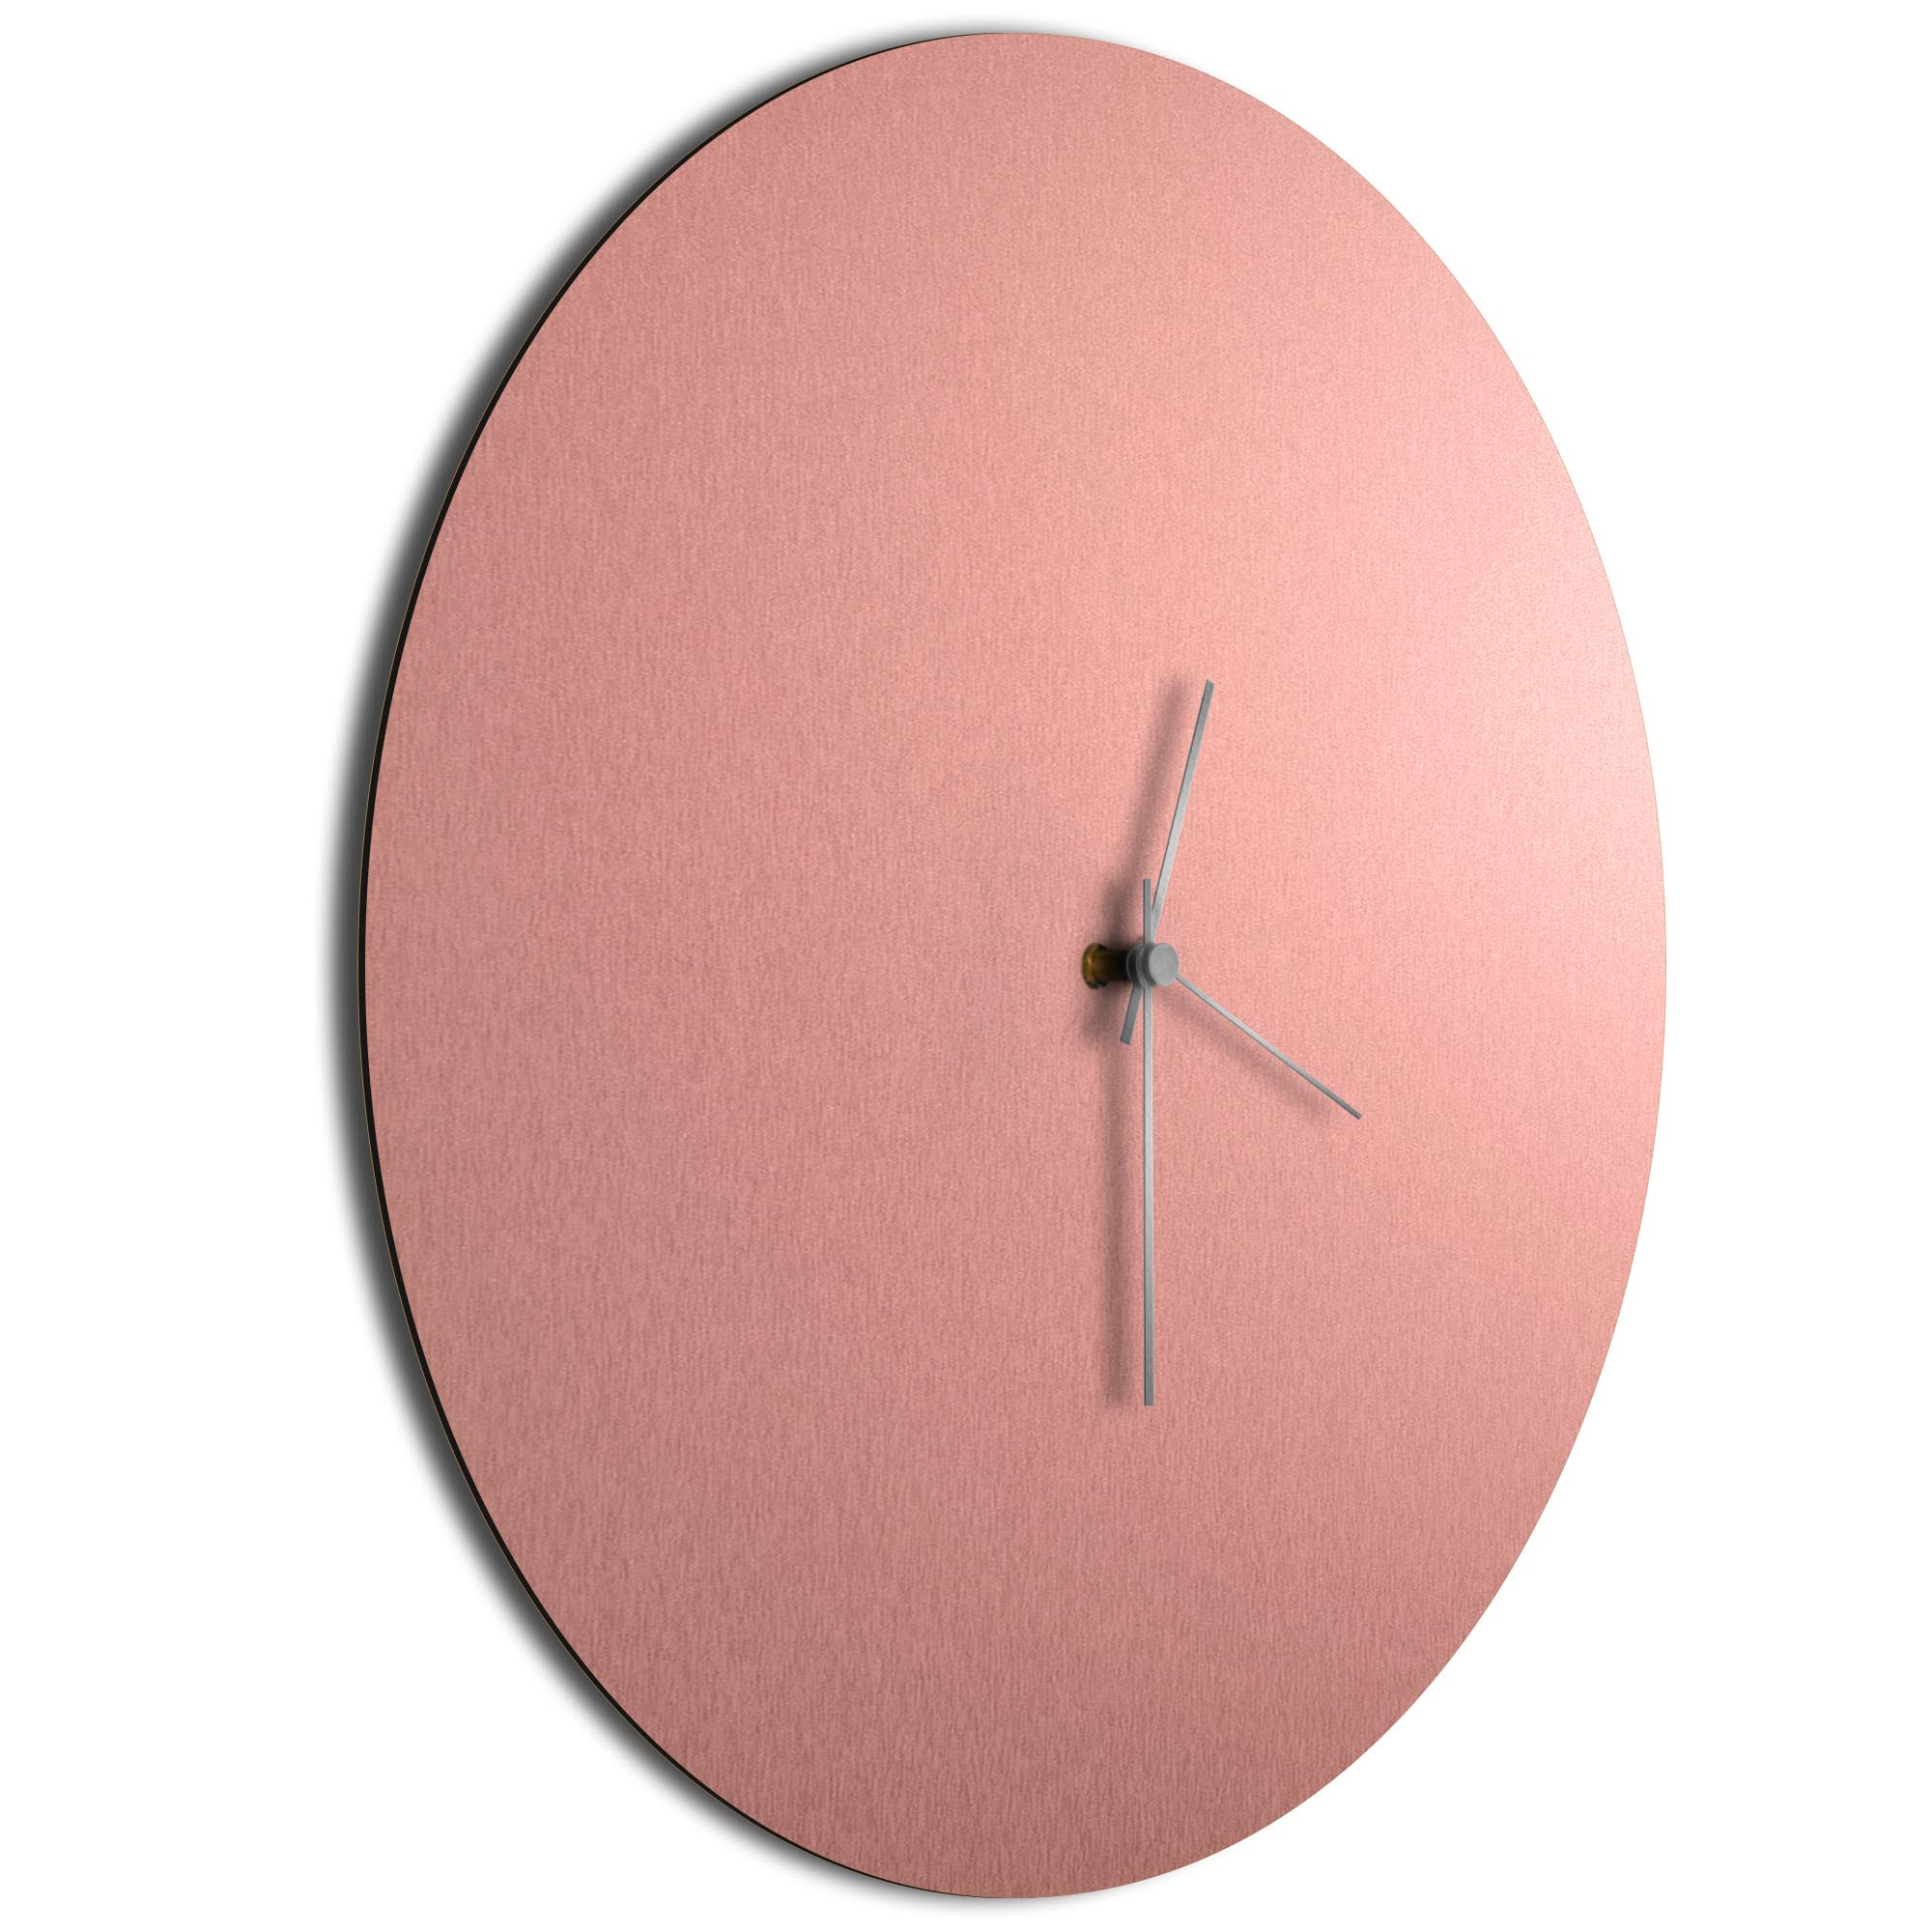 Coppersmith Circle Clock Silver - Image 2